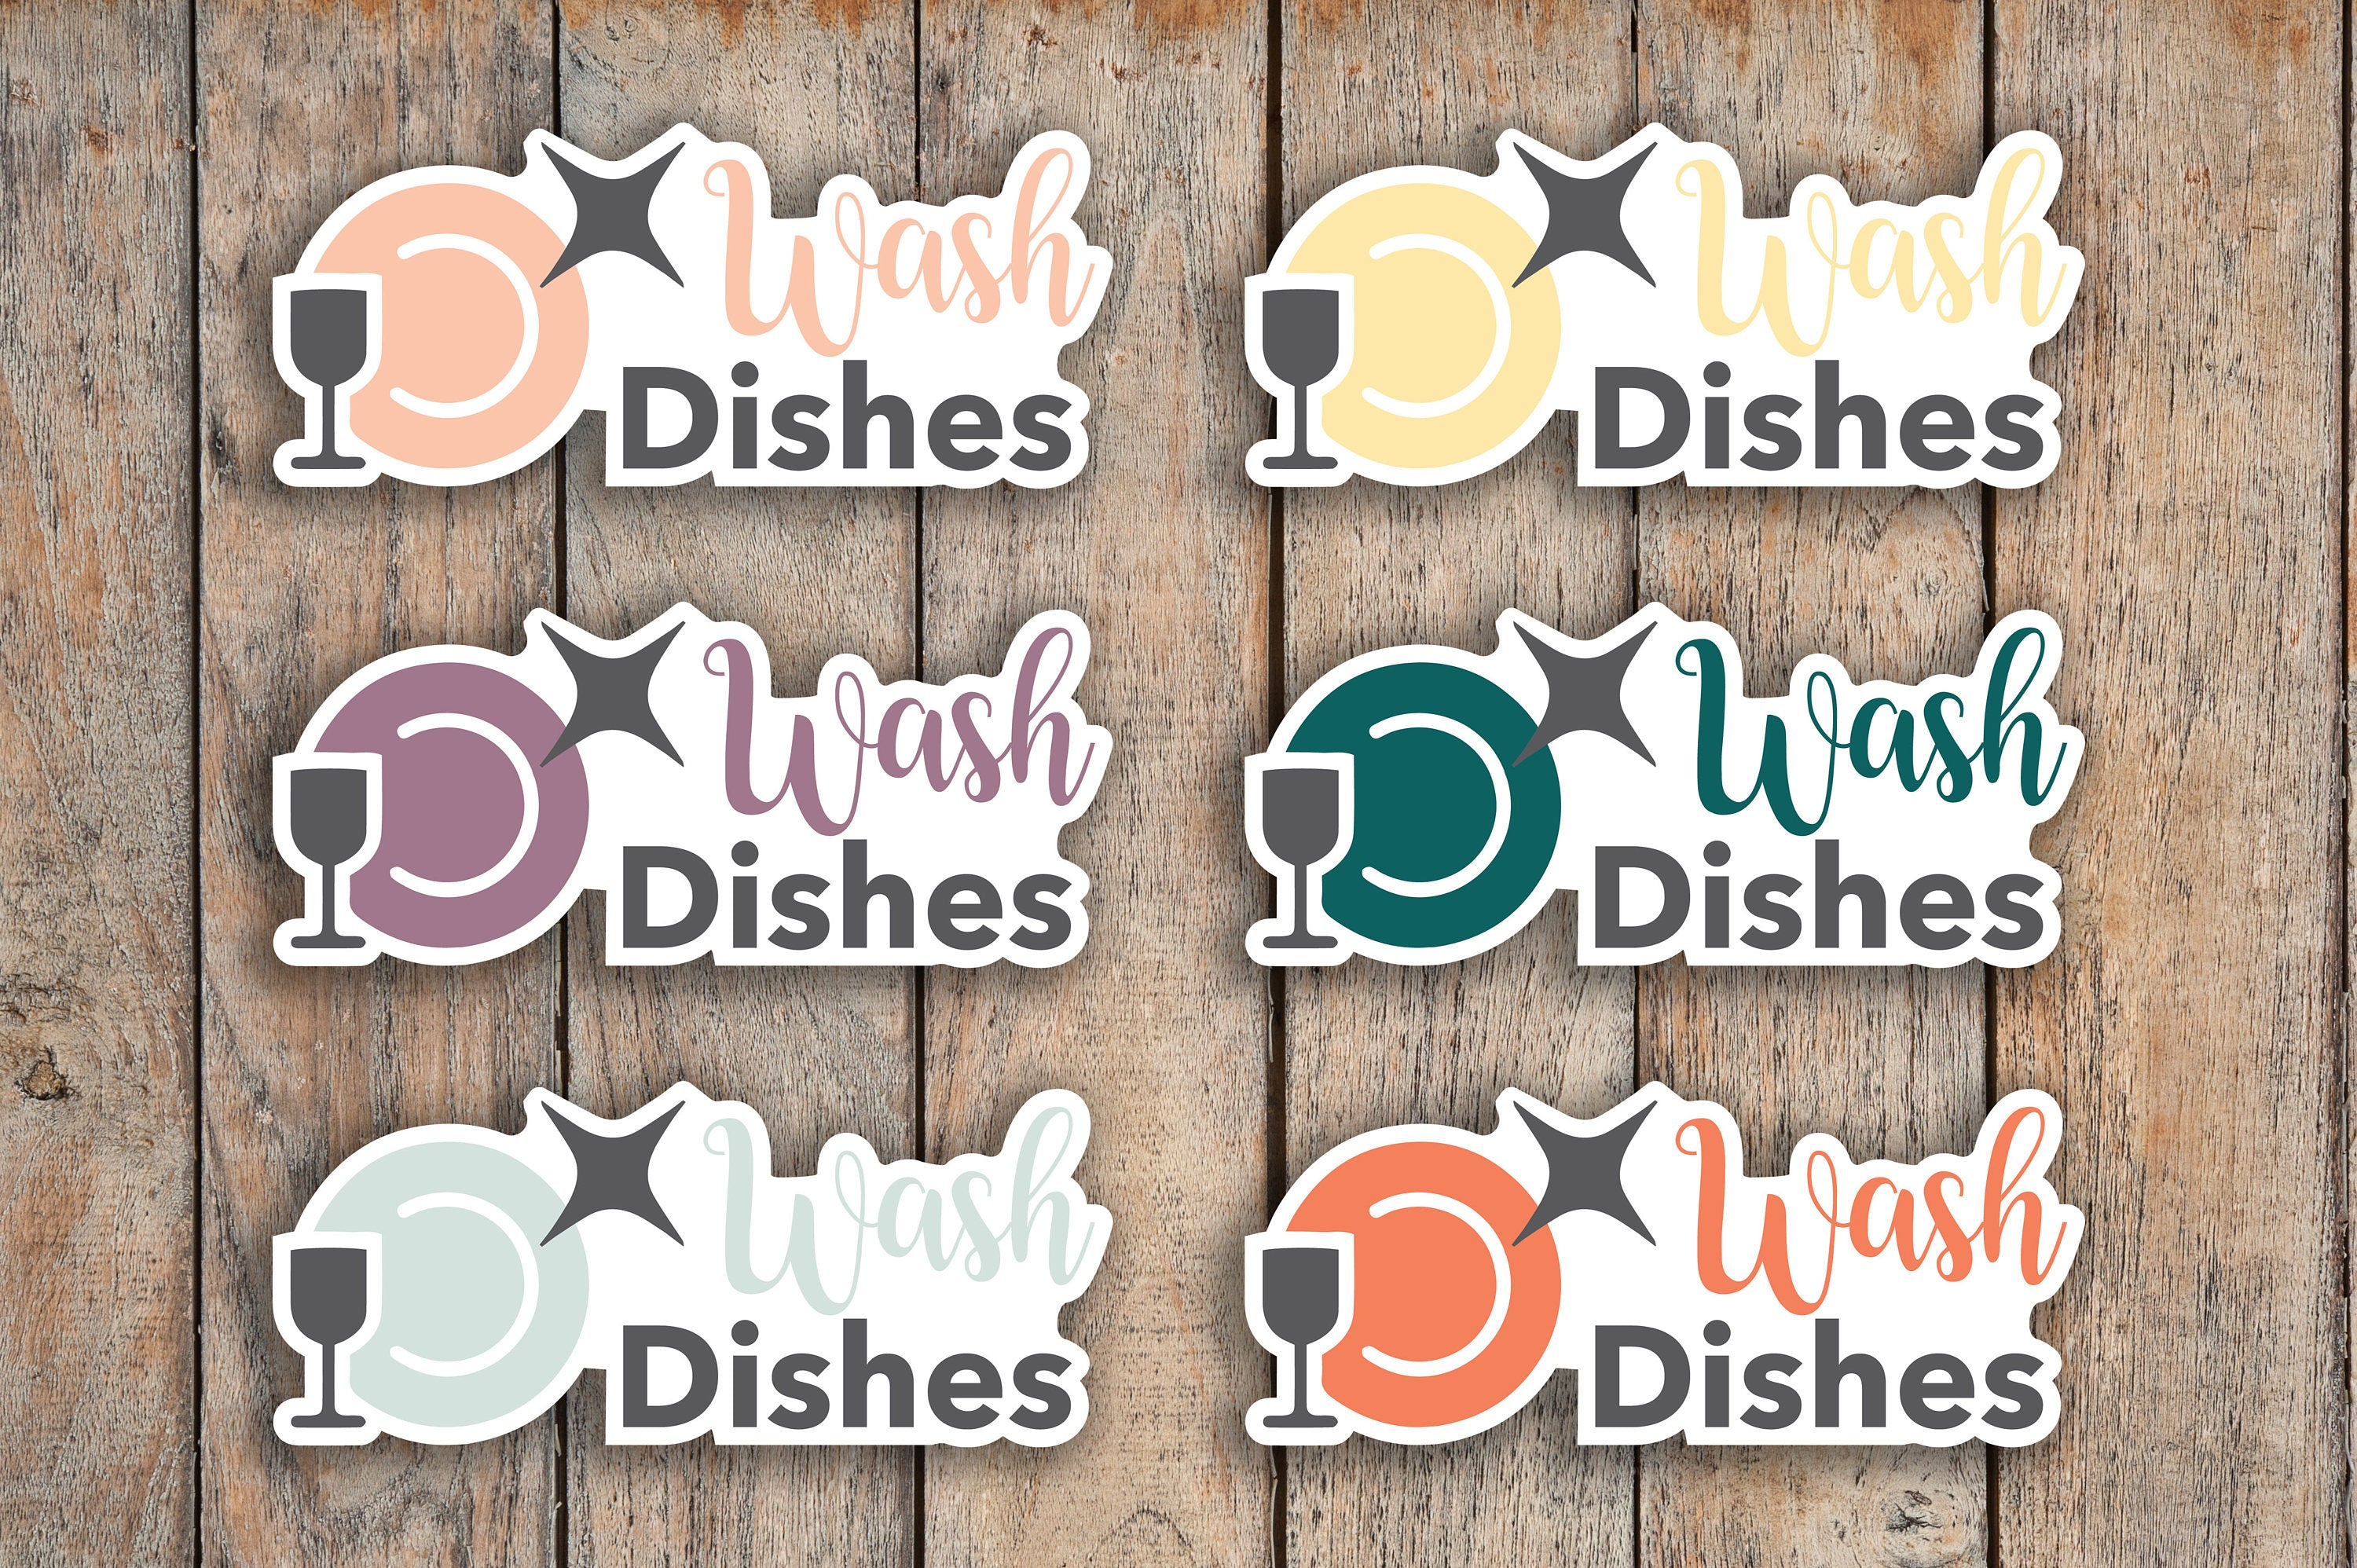 28 Wash Dishes, Kids Daily Chores, Meal Cleanup, Cleaning, Kids Chores Icon Planner Stickers for 2018 inkWELL Press Planners IWP-Q166